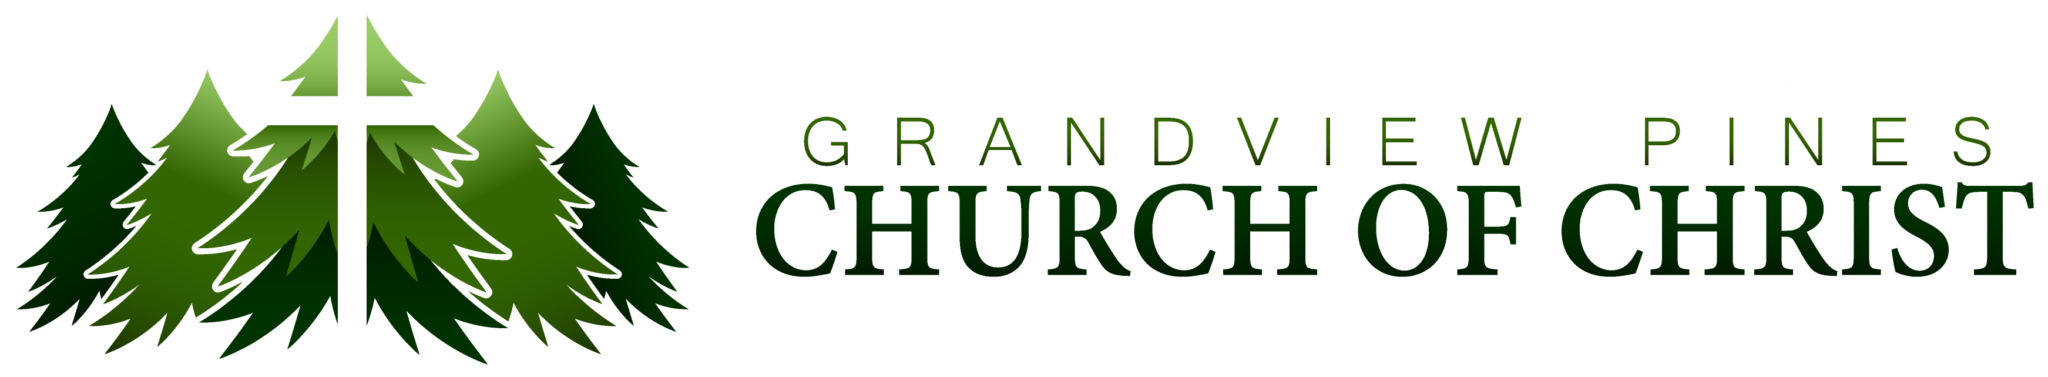 The church of Christ at Grandview Pines